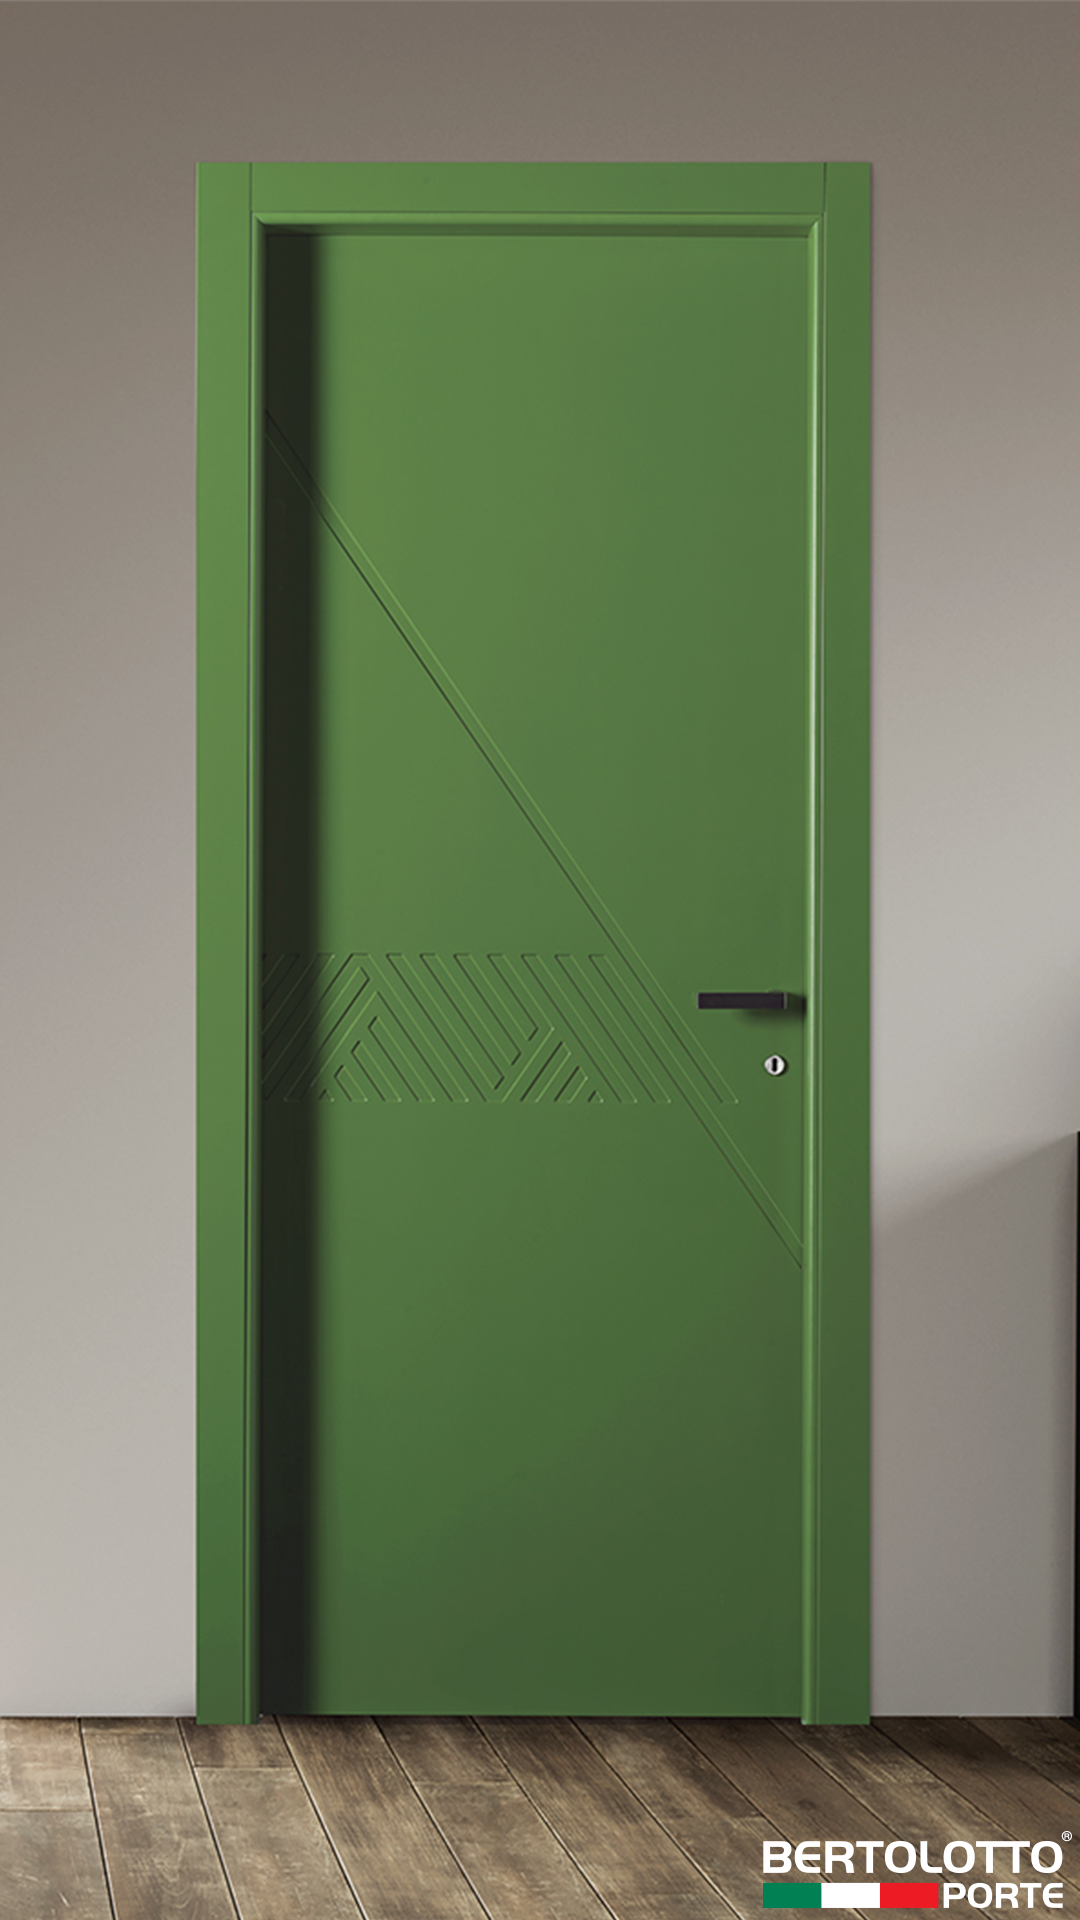 Arco Per Porta pin by richard on finishings (with images) | interior door